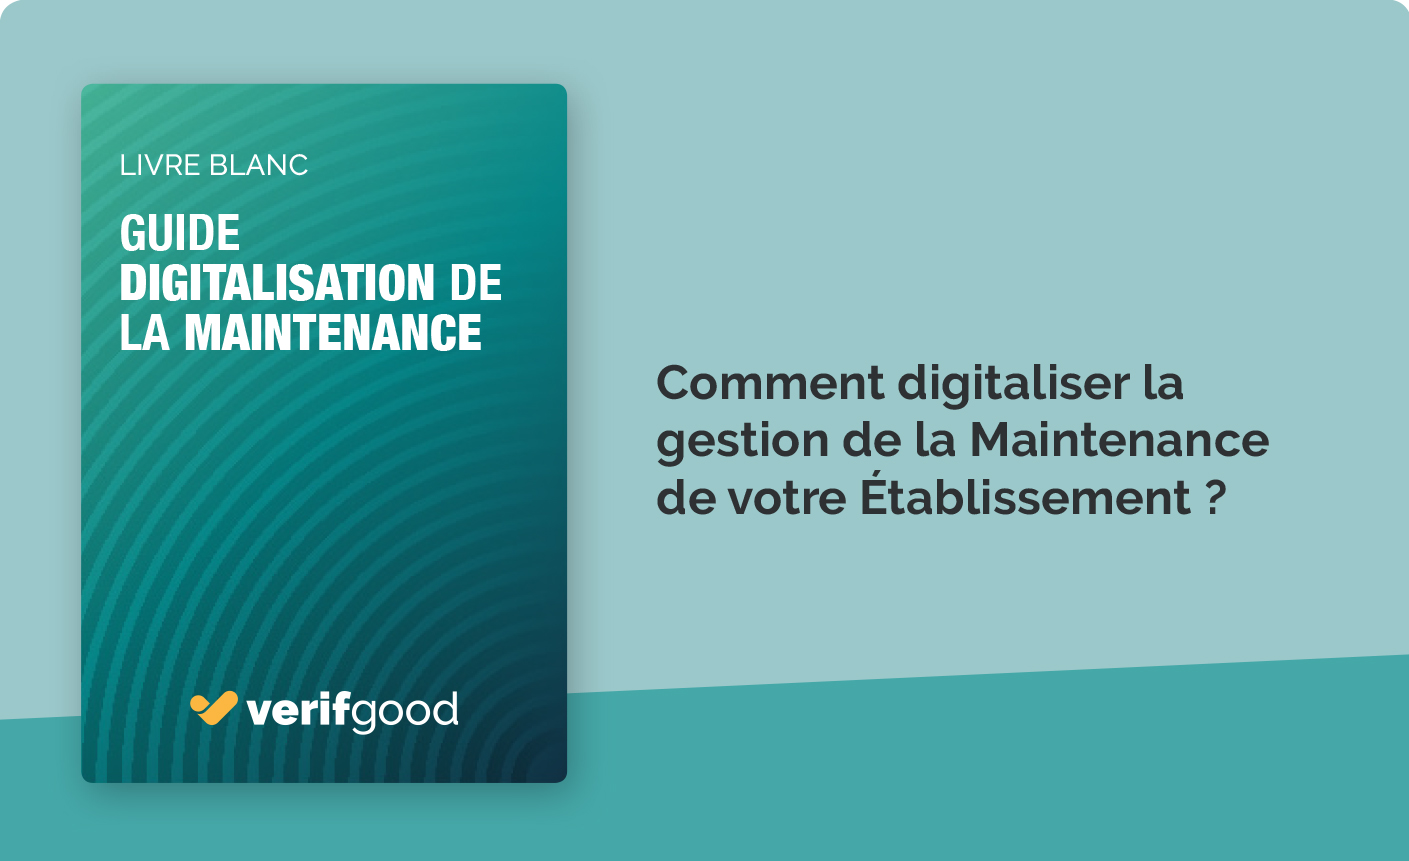 guide digitalisation de la maintenance